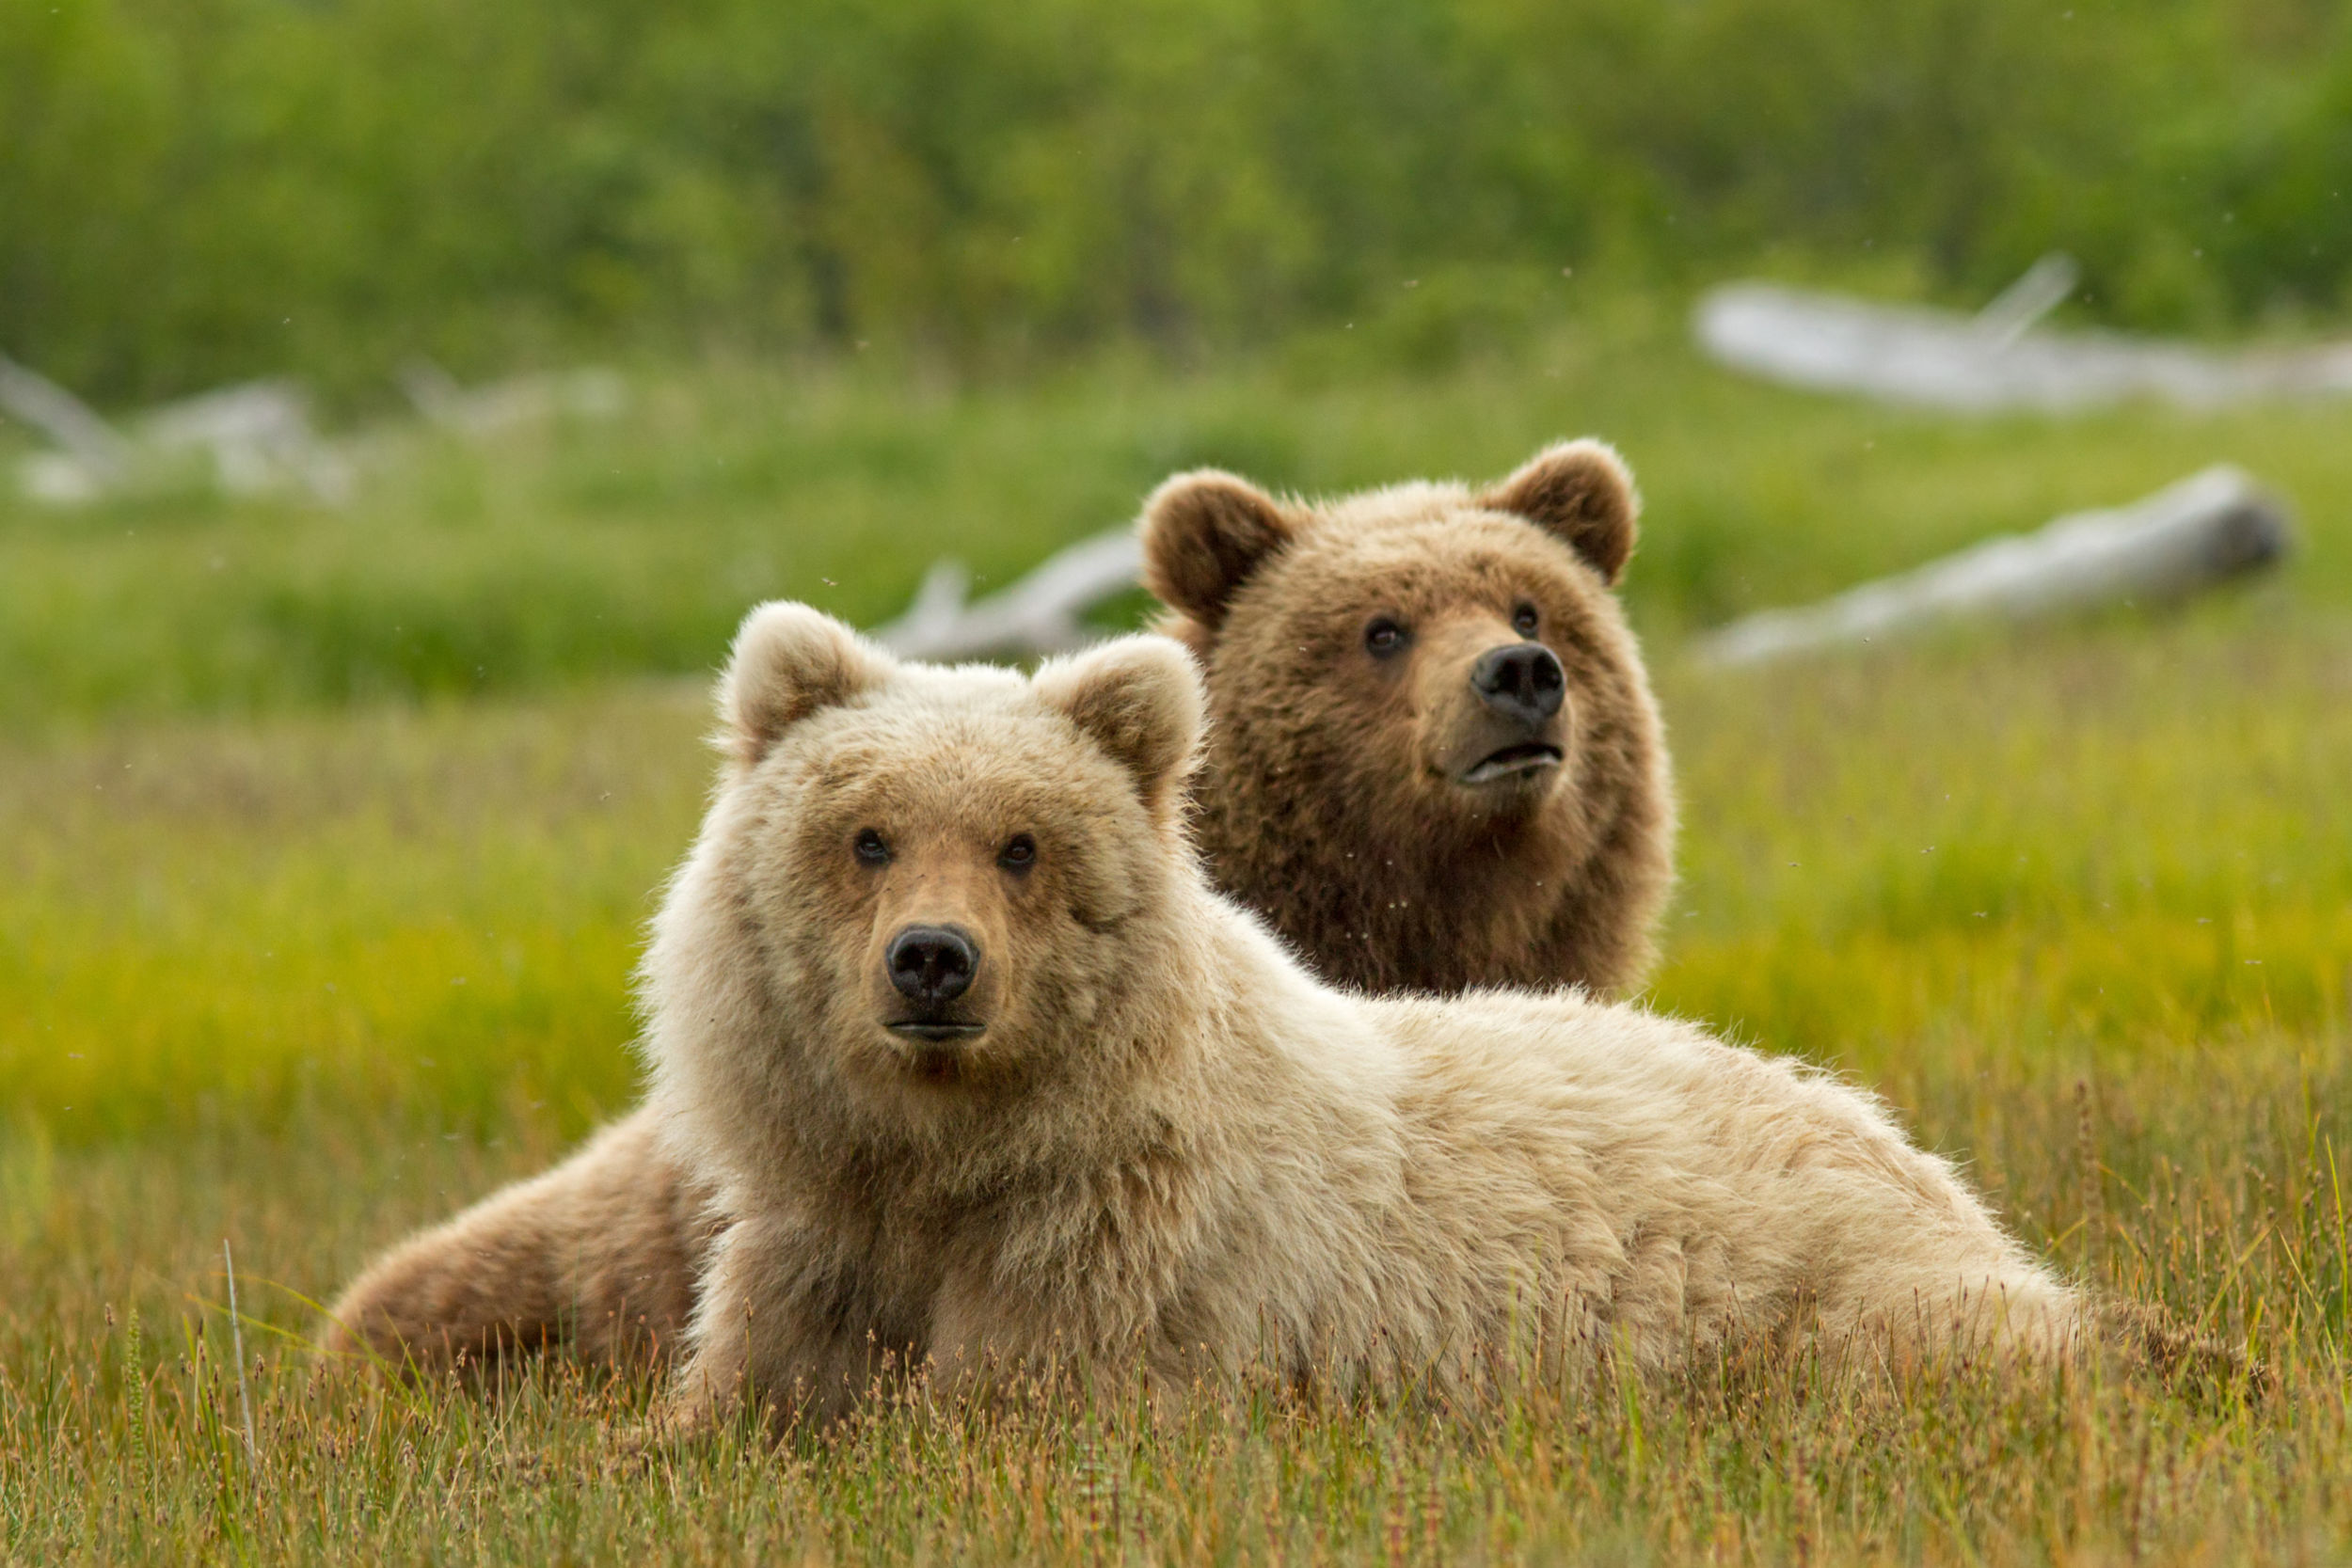 Animals (Bears)